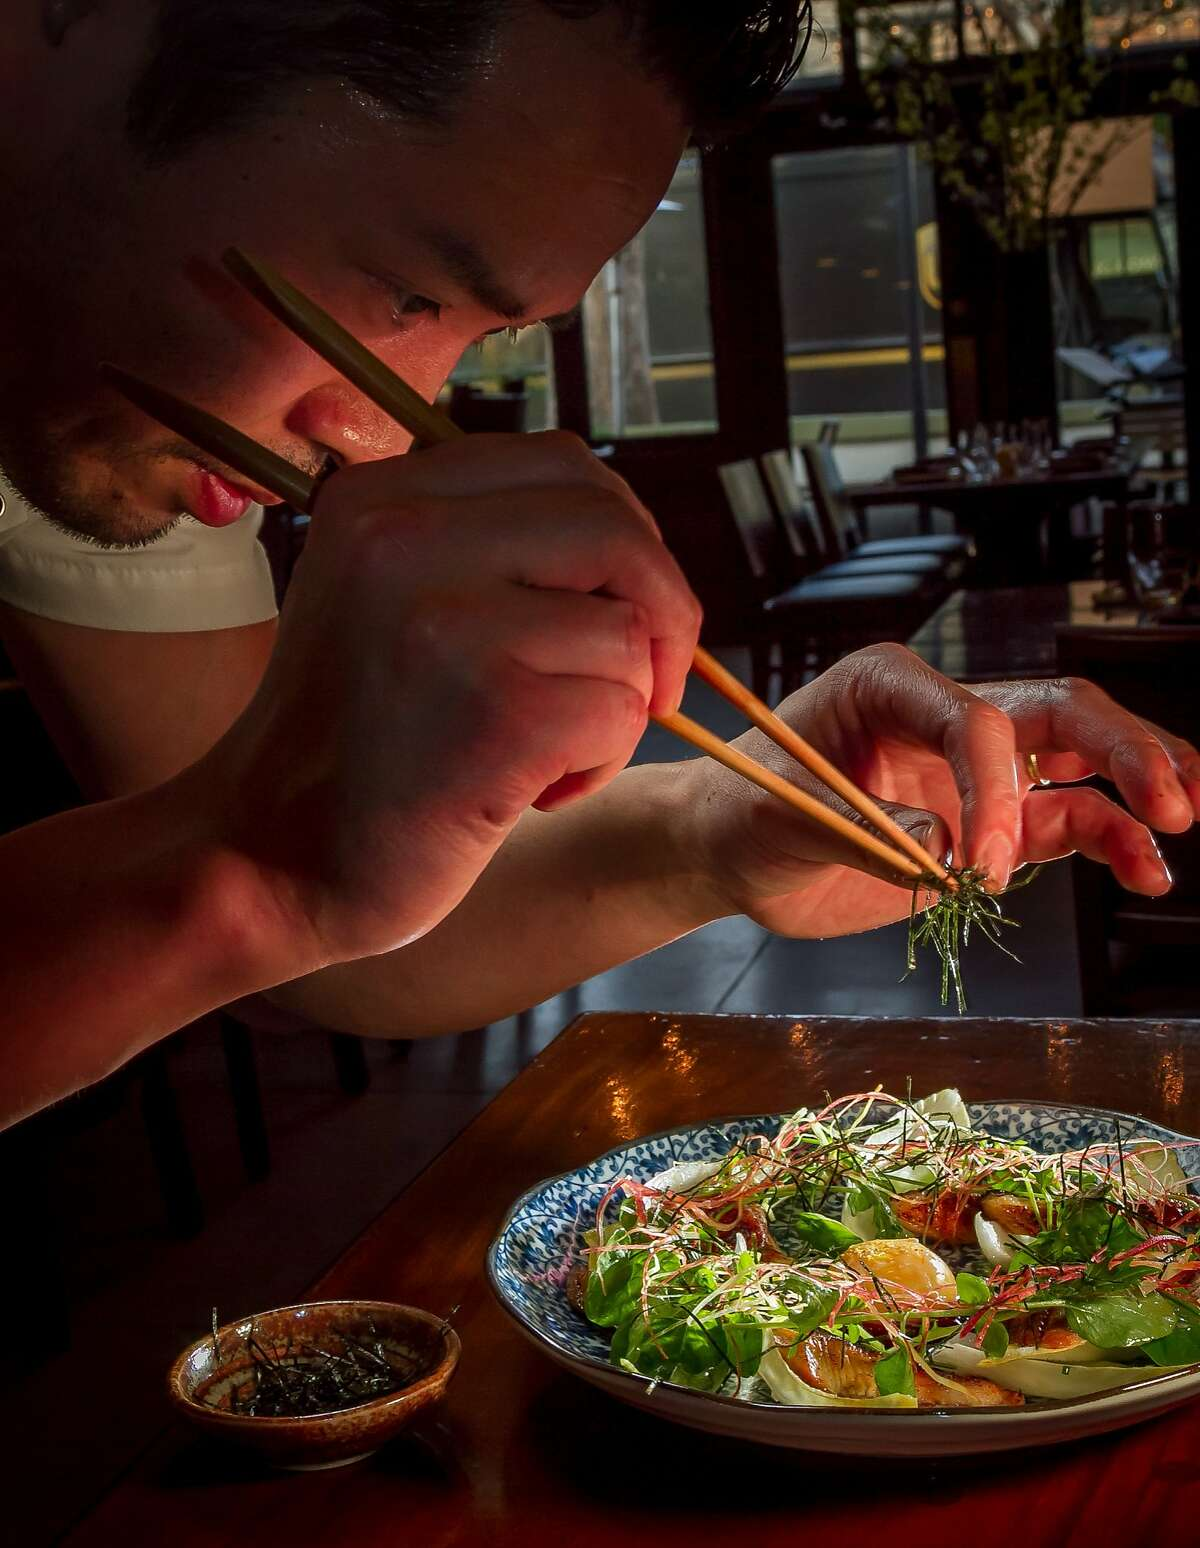 Chef Sho Kamio adds the final touches to the Unagi Saad at Iyasare restaurant in Berkeley, Calif., is seen on Monday, February 10th, 2014.